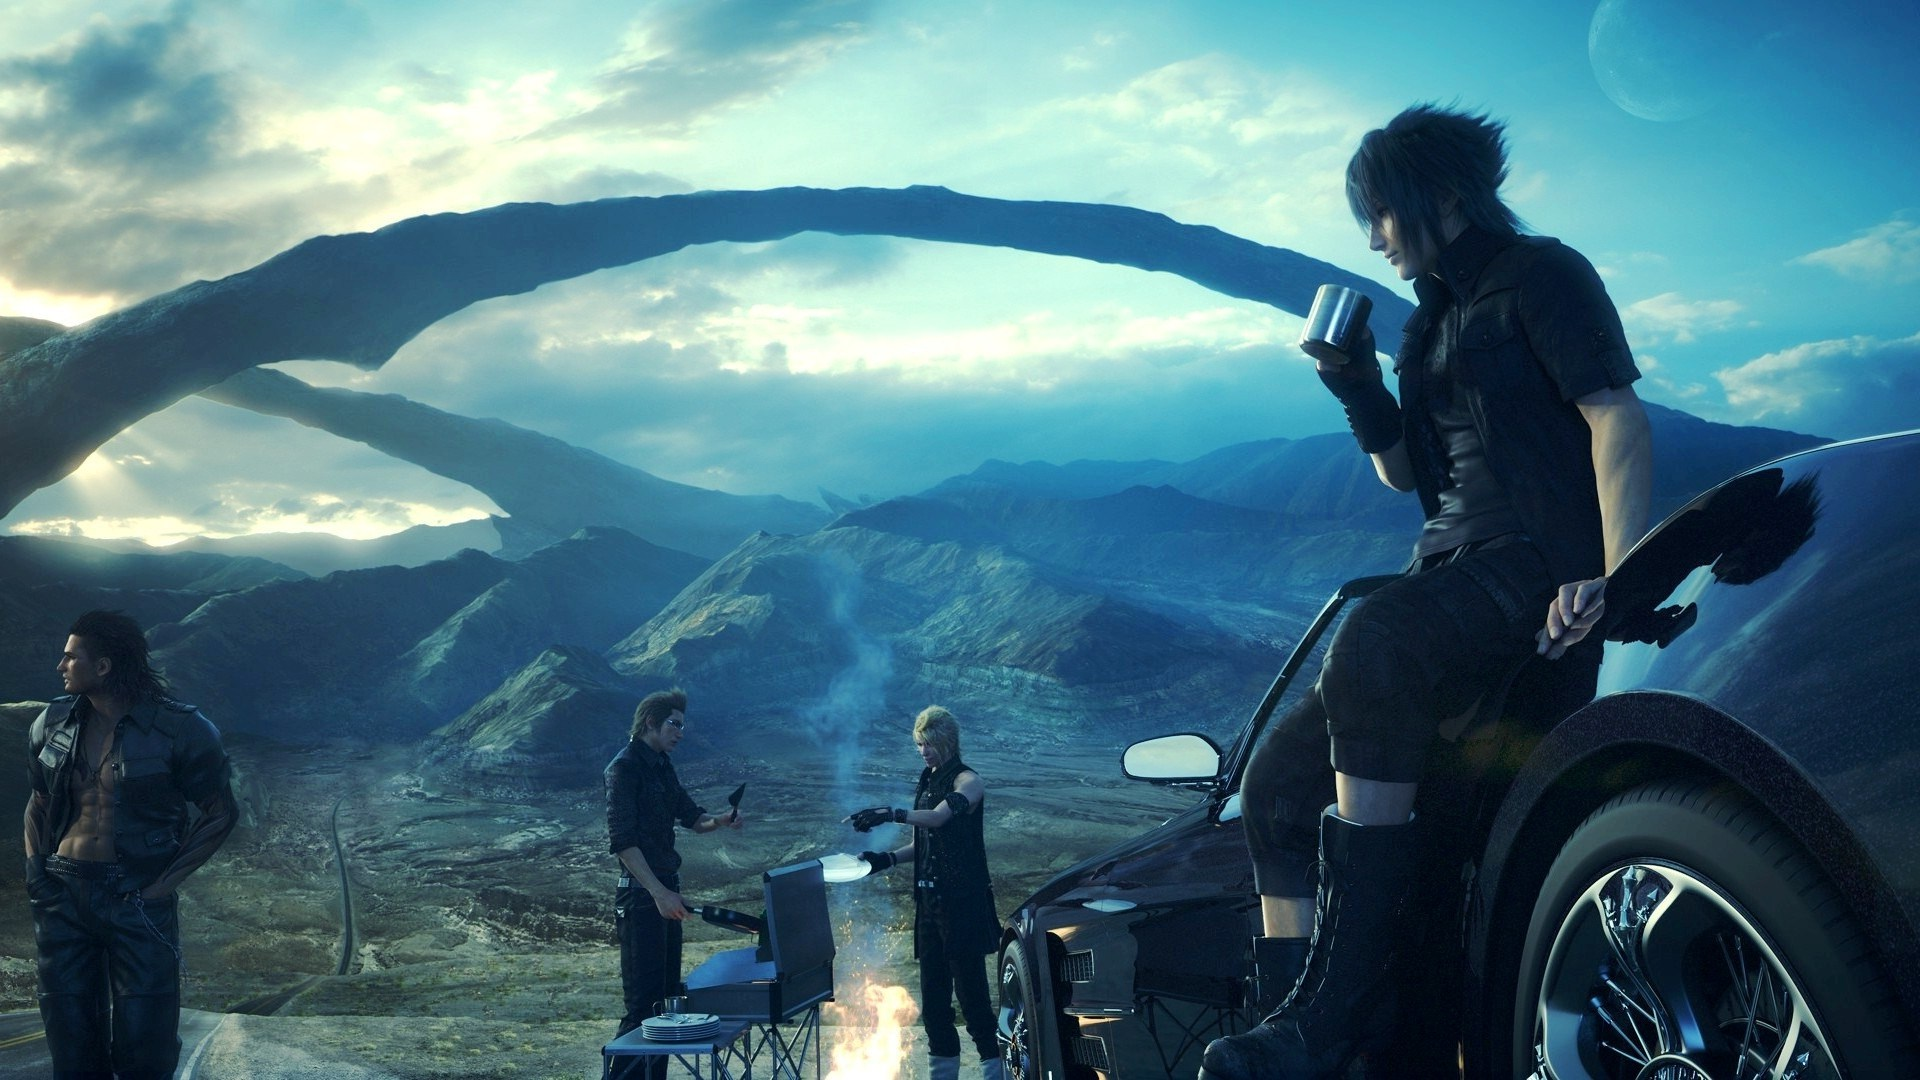 """Final Fantasy XV"" News Accidentally Released - Leaks Sure Are a Plenty Nowadays"